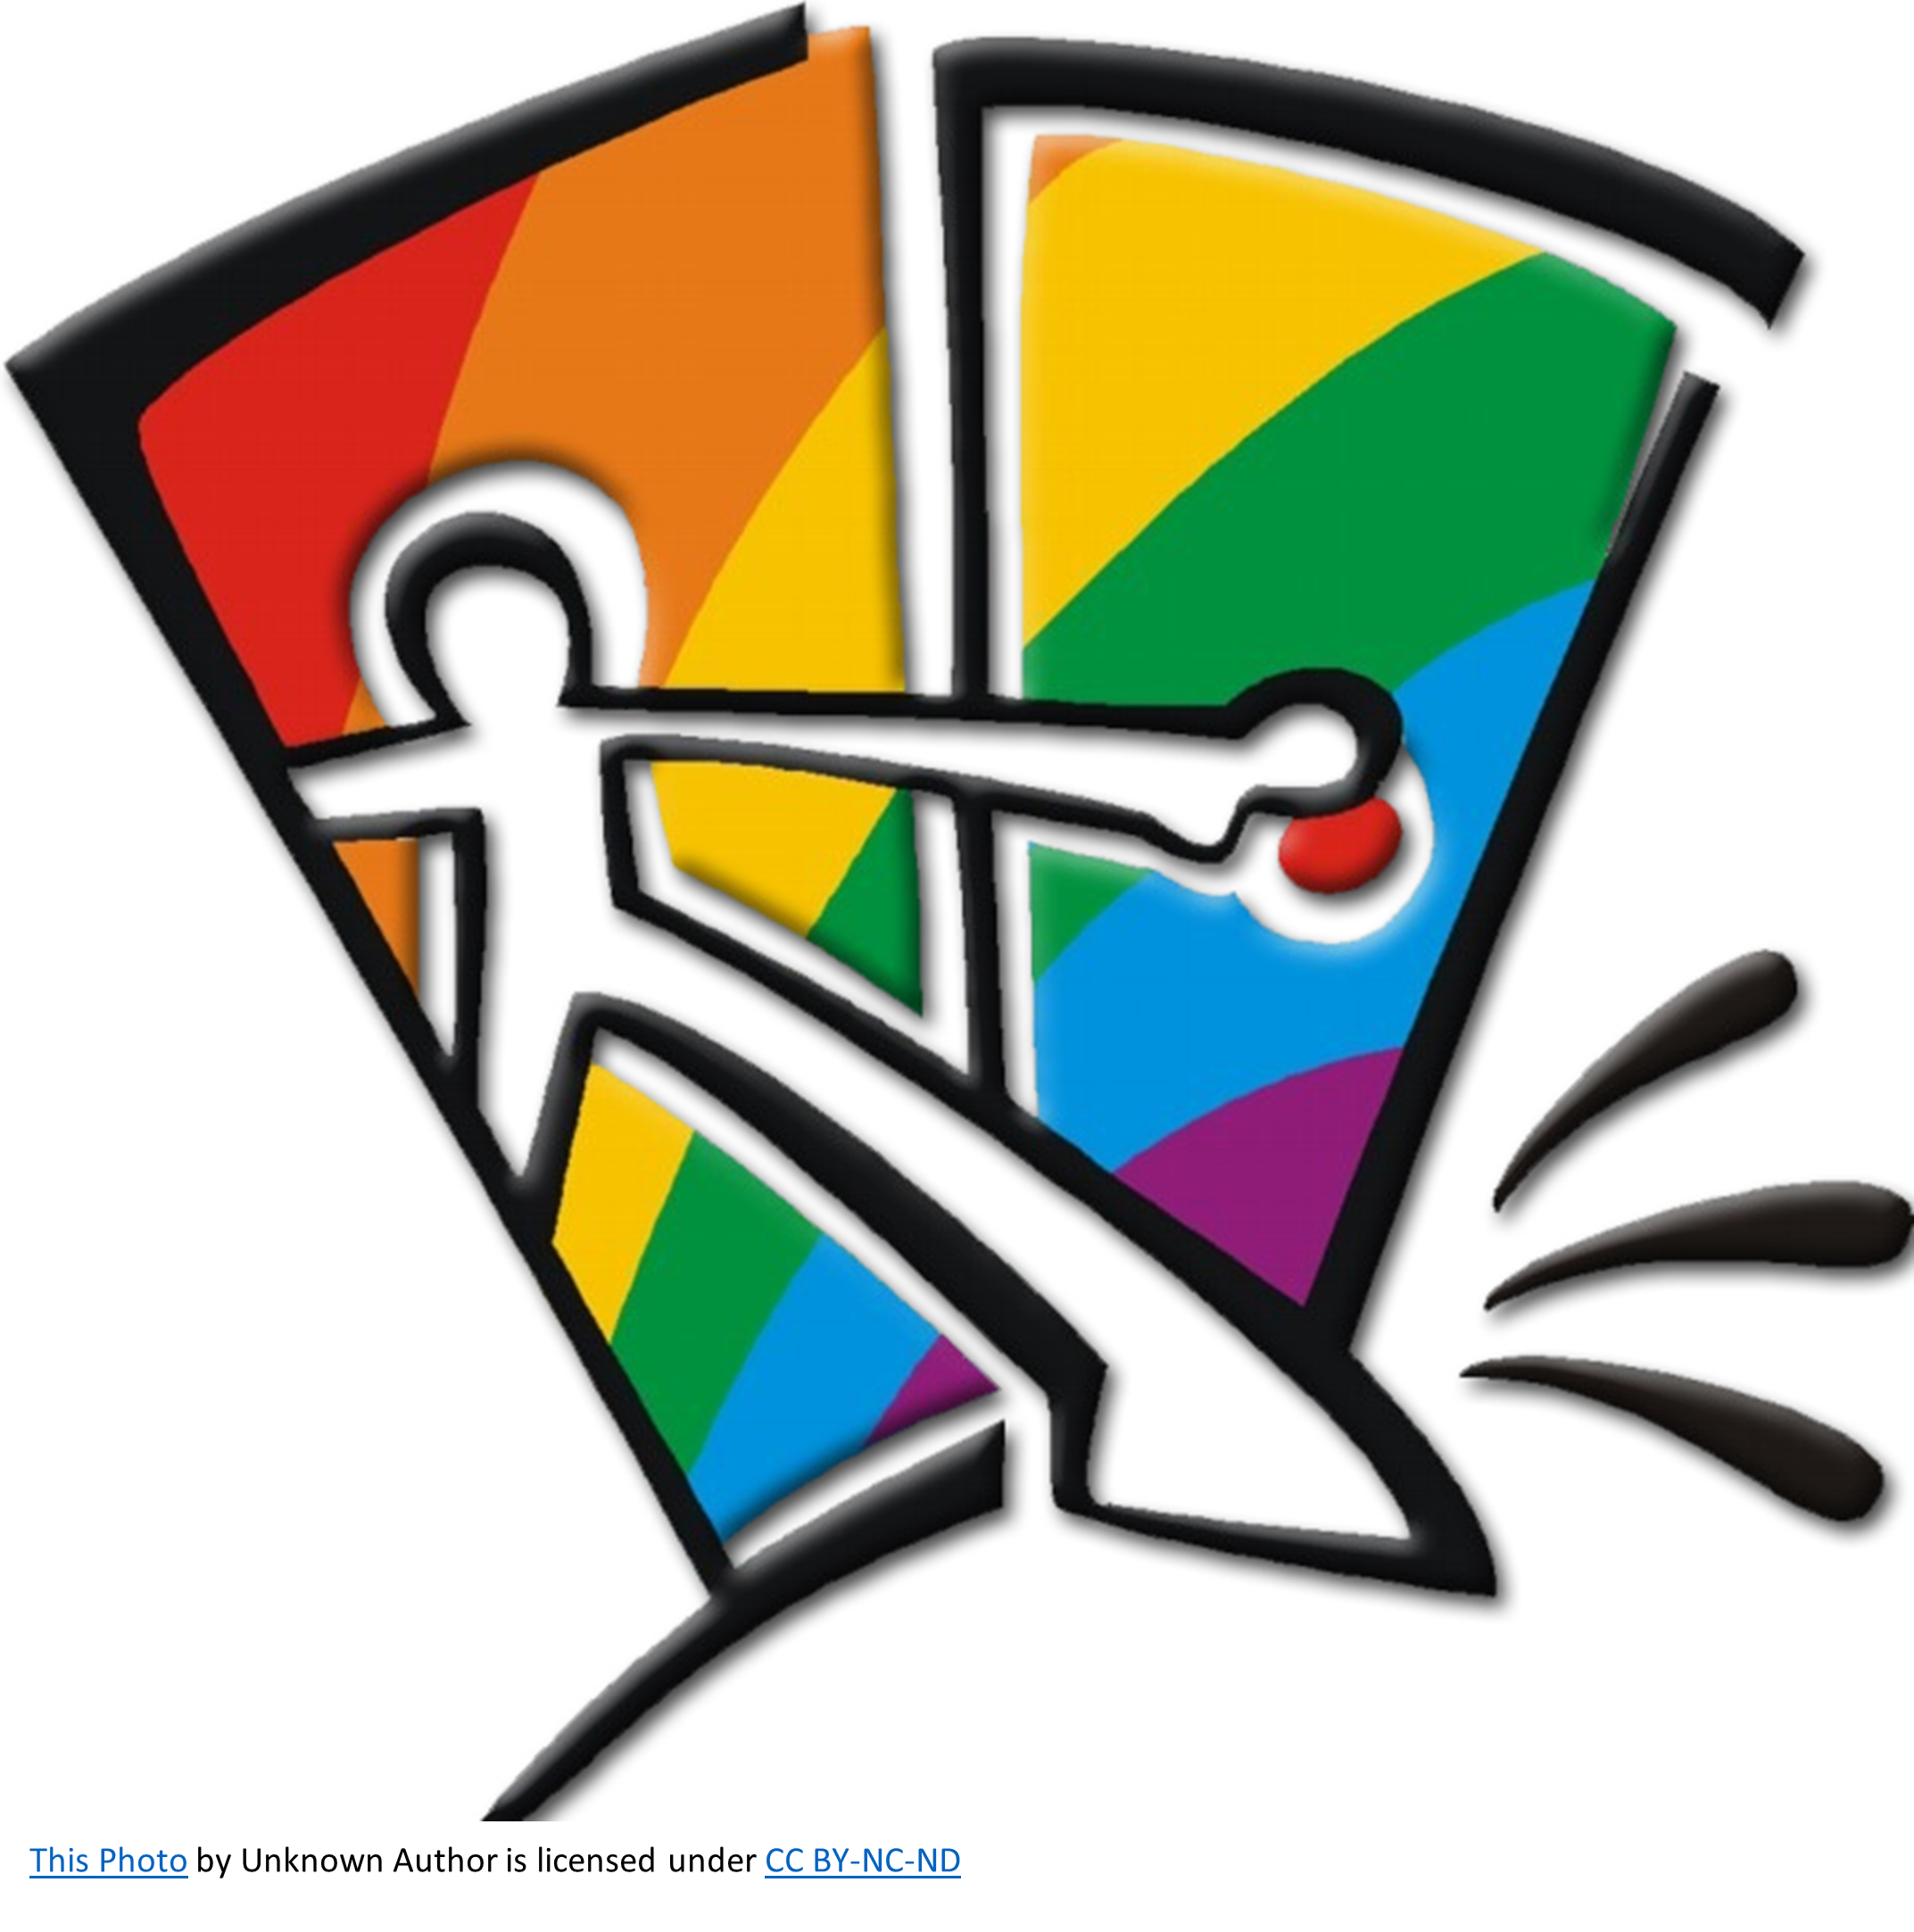 stick figure stepping through a doorway against a rainbow colored background